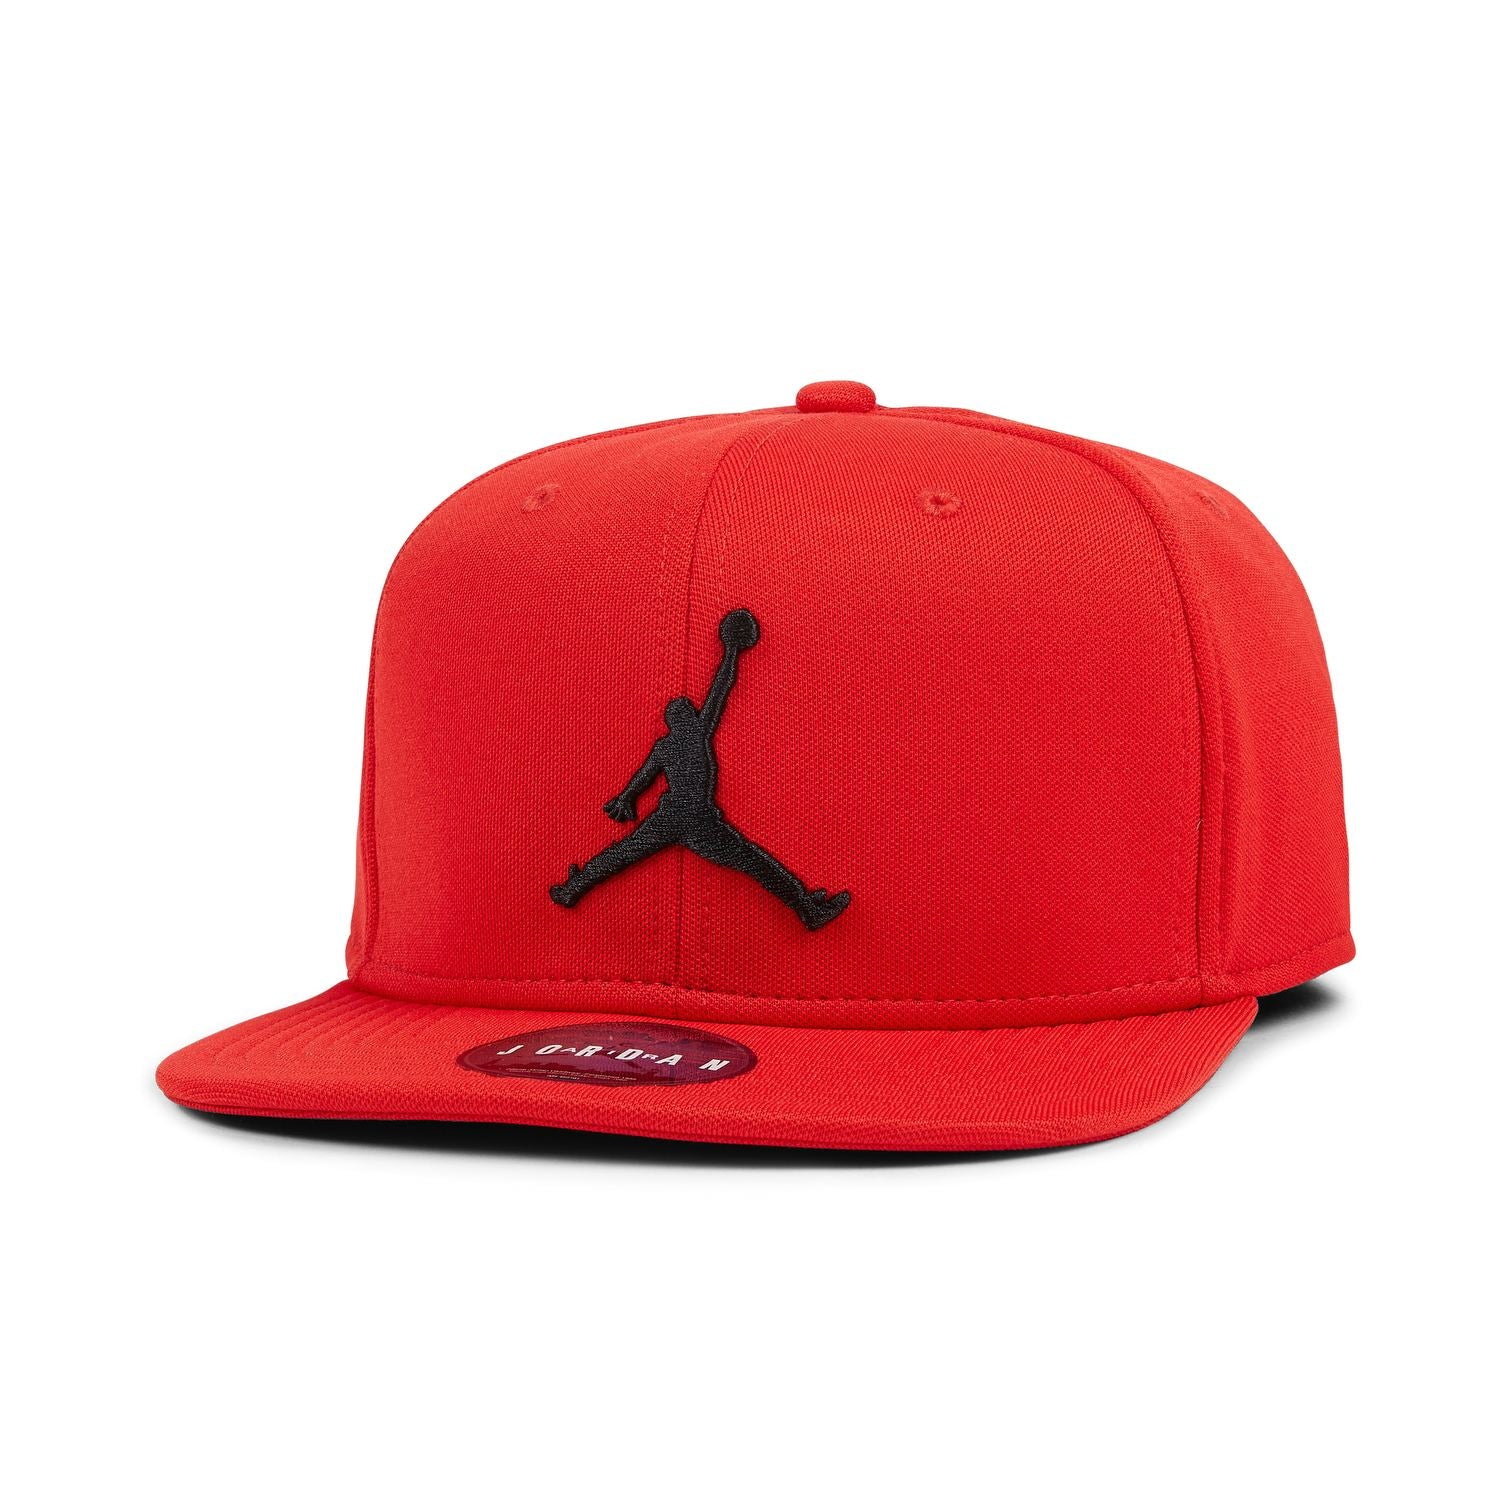 Air Jordan Pro Jumpman Snapback Cap (Gym Red   Black) – Trilogy Merch PH 514cd0b8d9c5